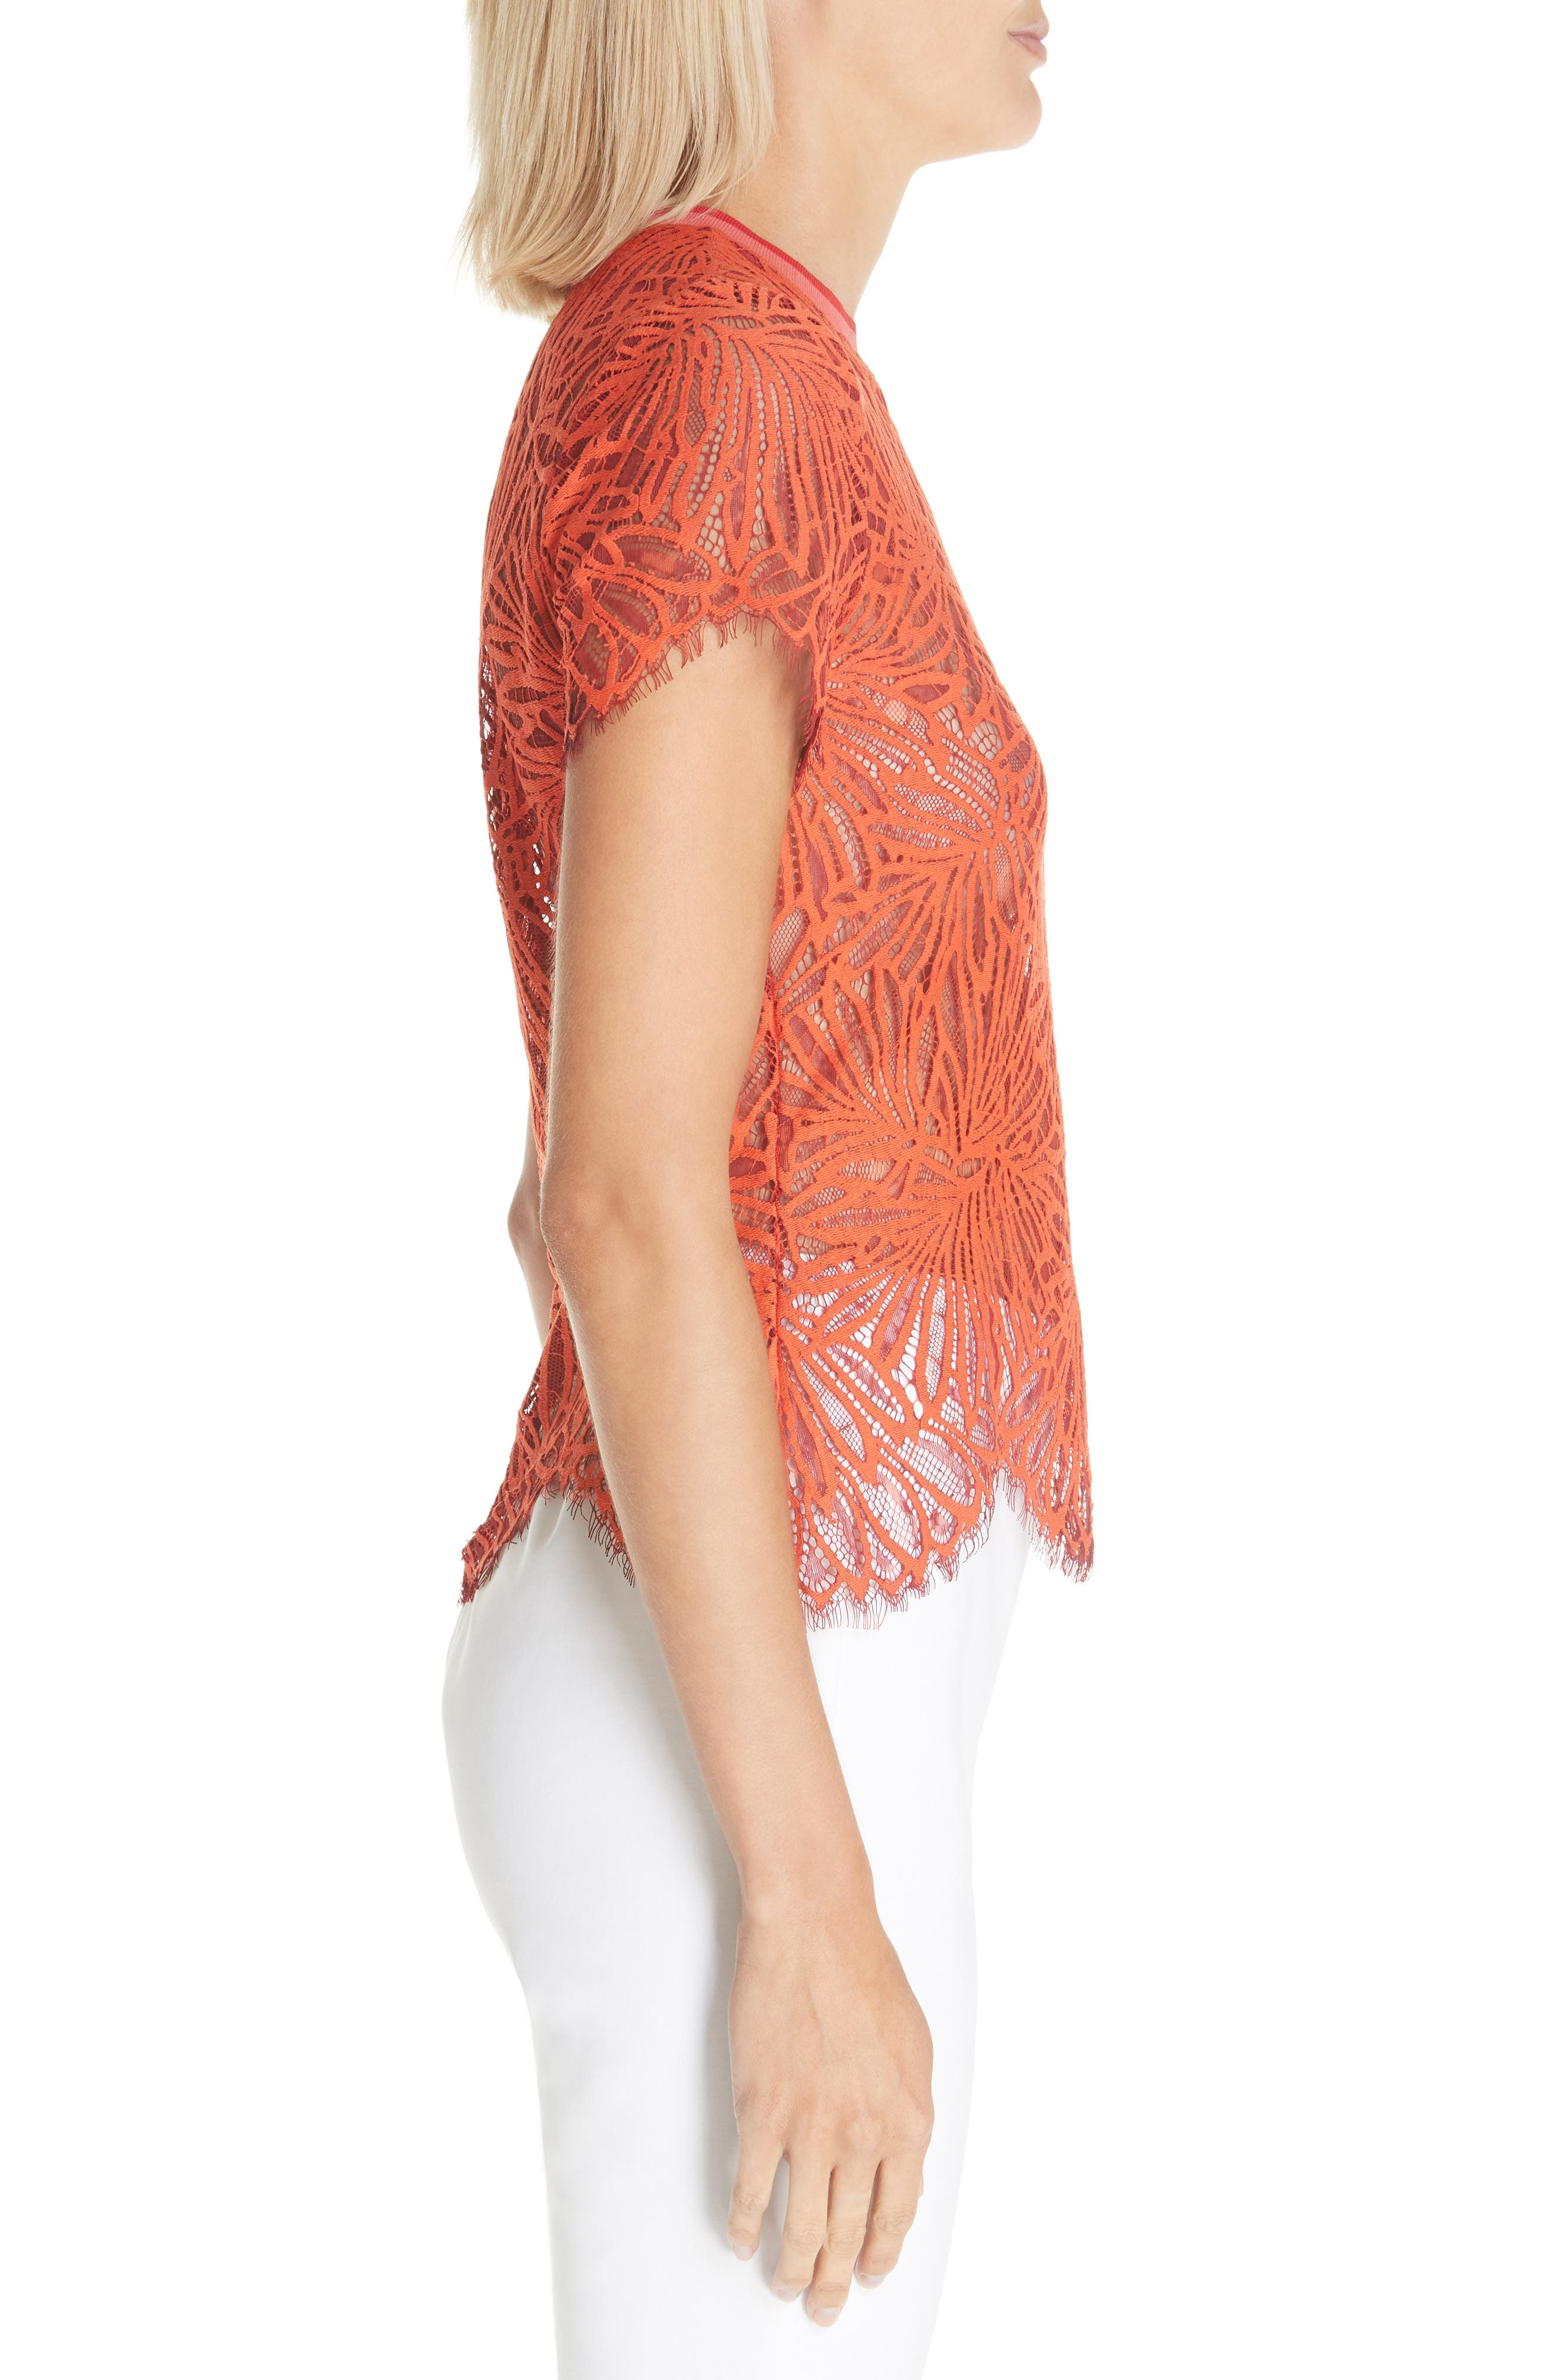 PROENZA SCHOULER,                             Scalloped Stretch Lace Top,                             Alternate thumbnail 3, color,                             TANGERINE